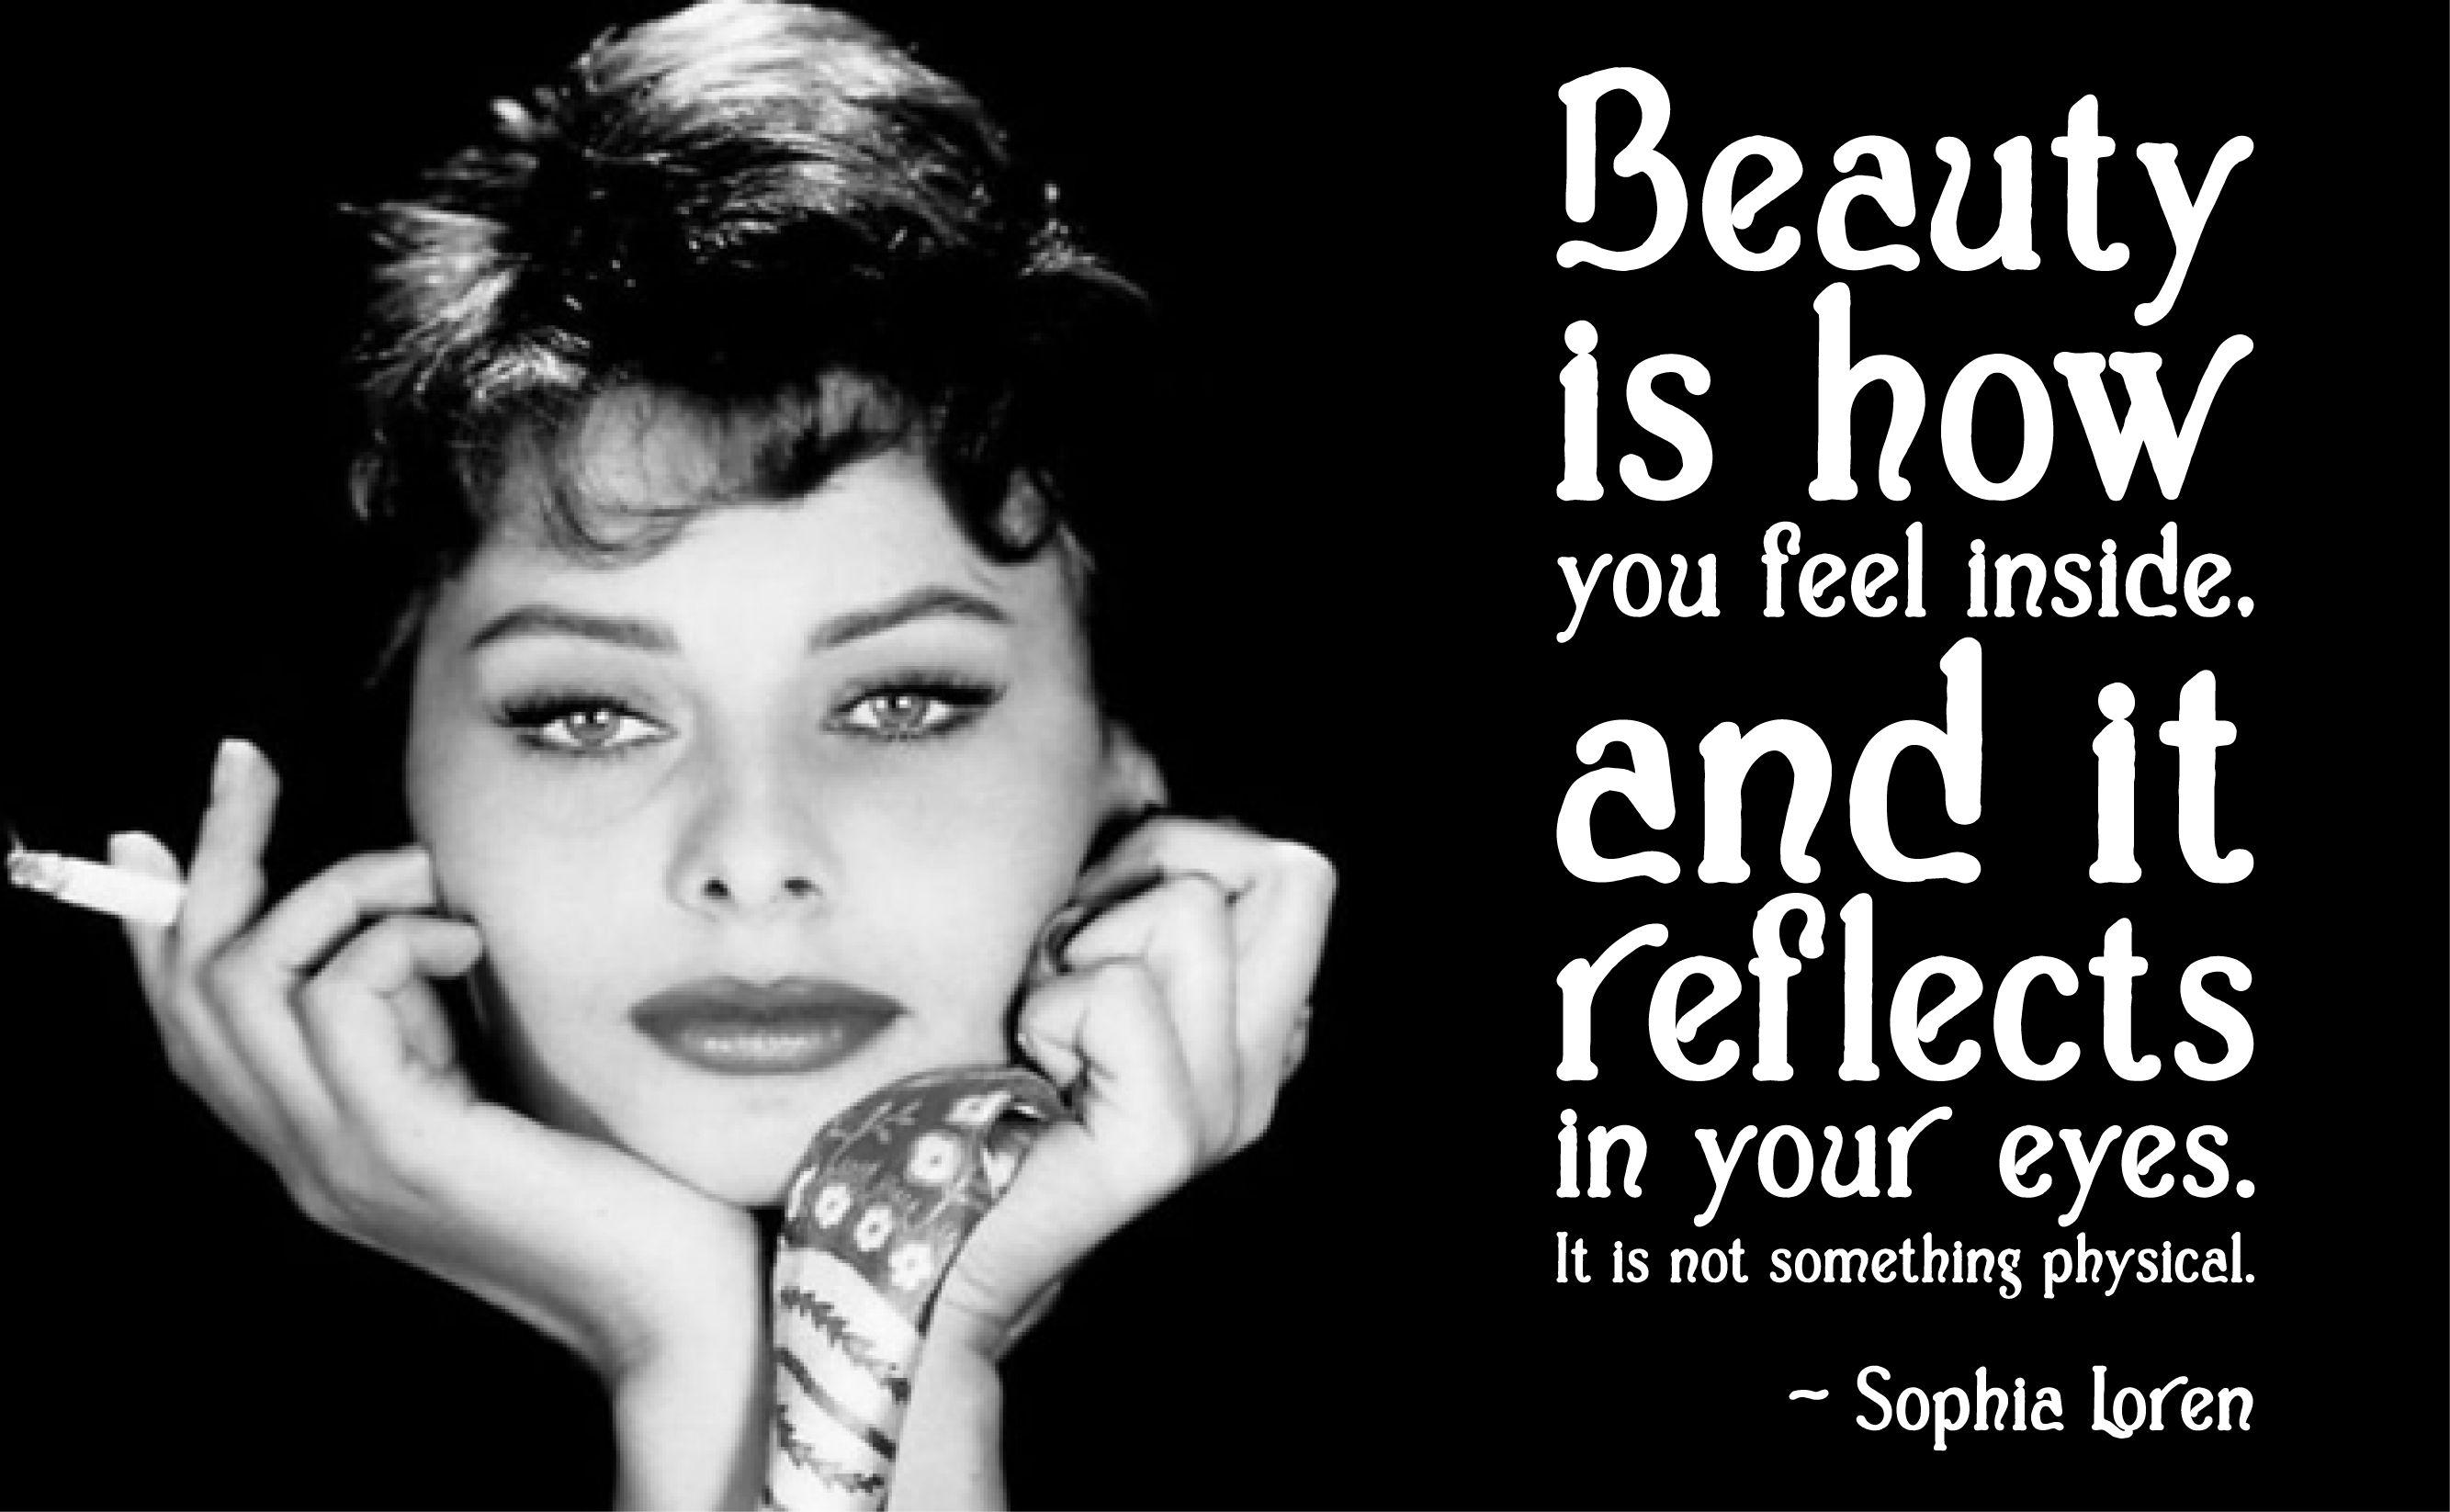 Beauty Reflects   Sophia LorenSophia Loren Quotes About Mothers